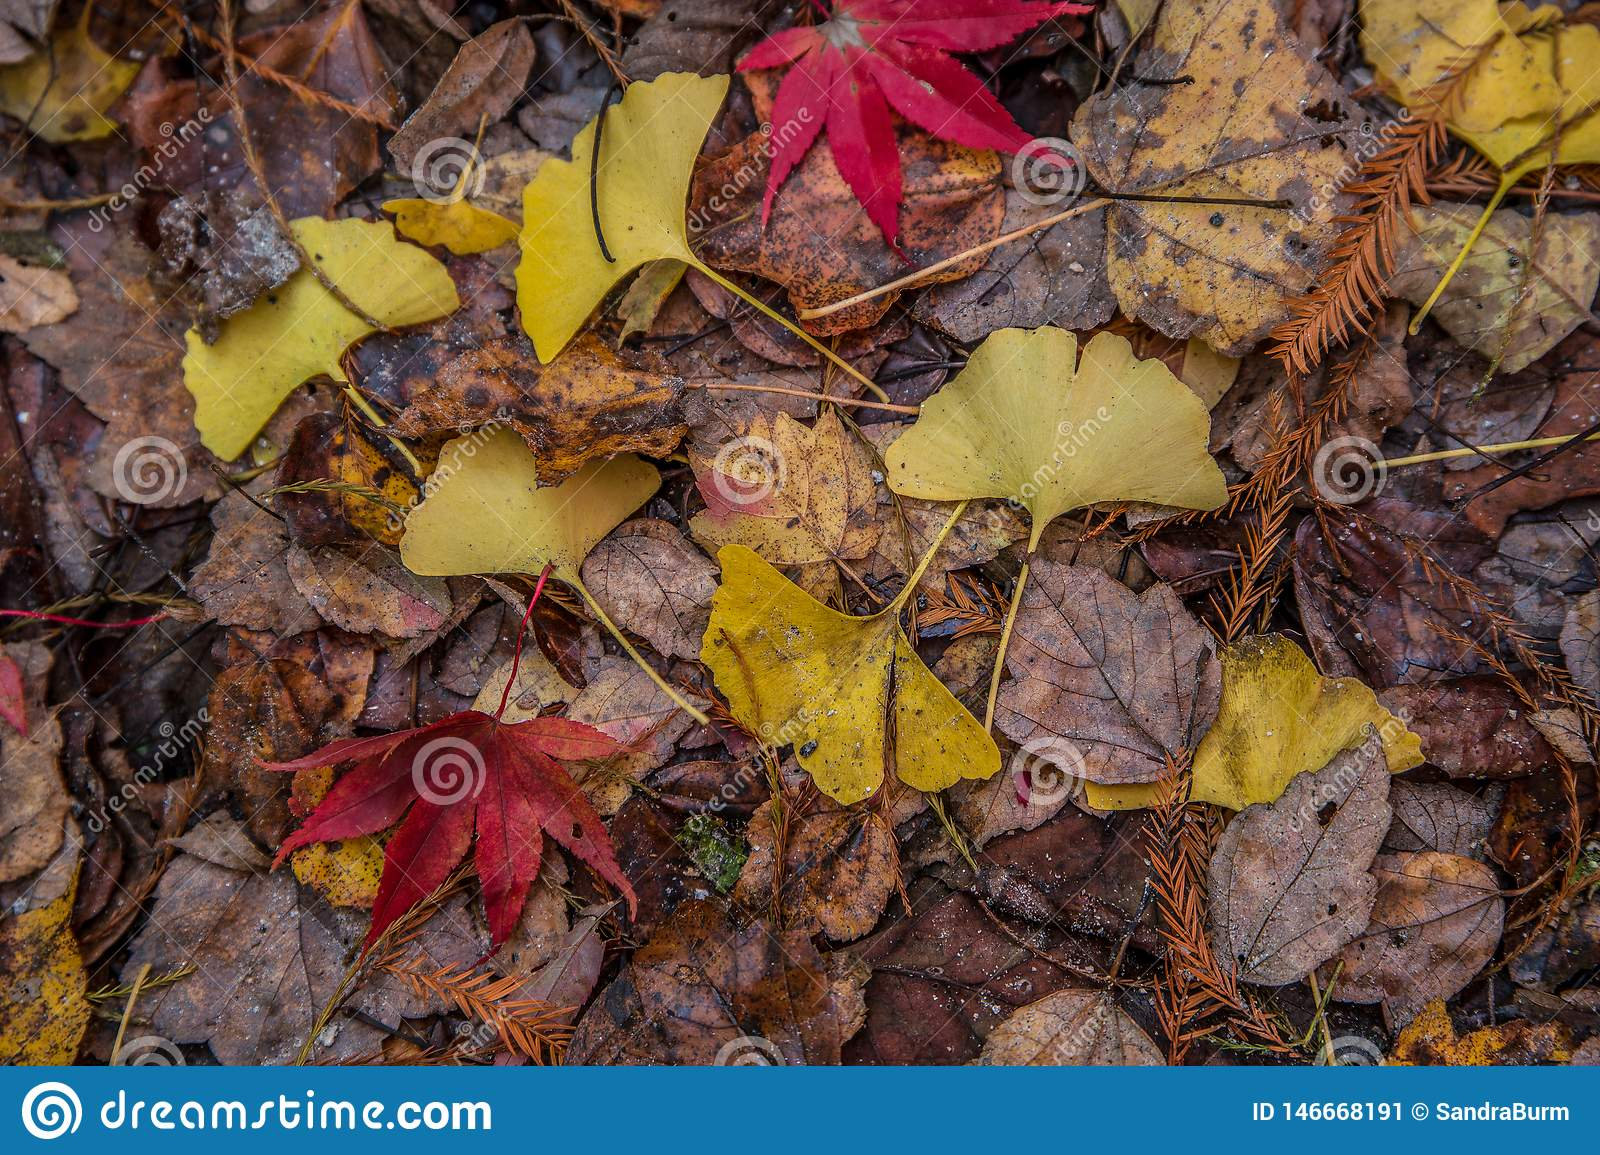 Colorful forest floor in autumn